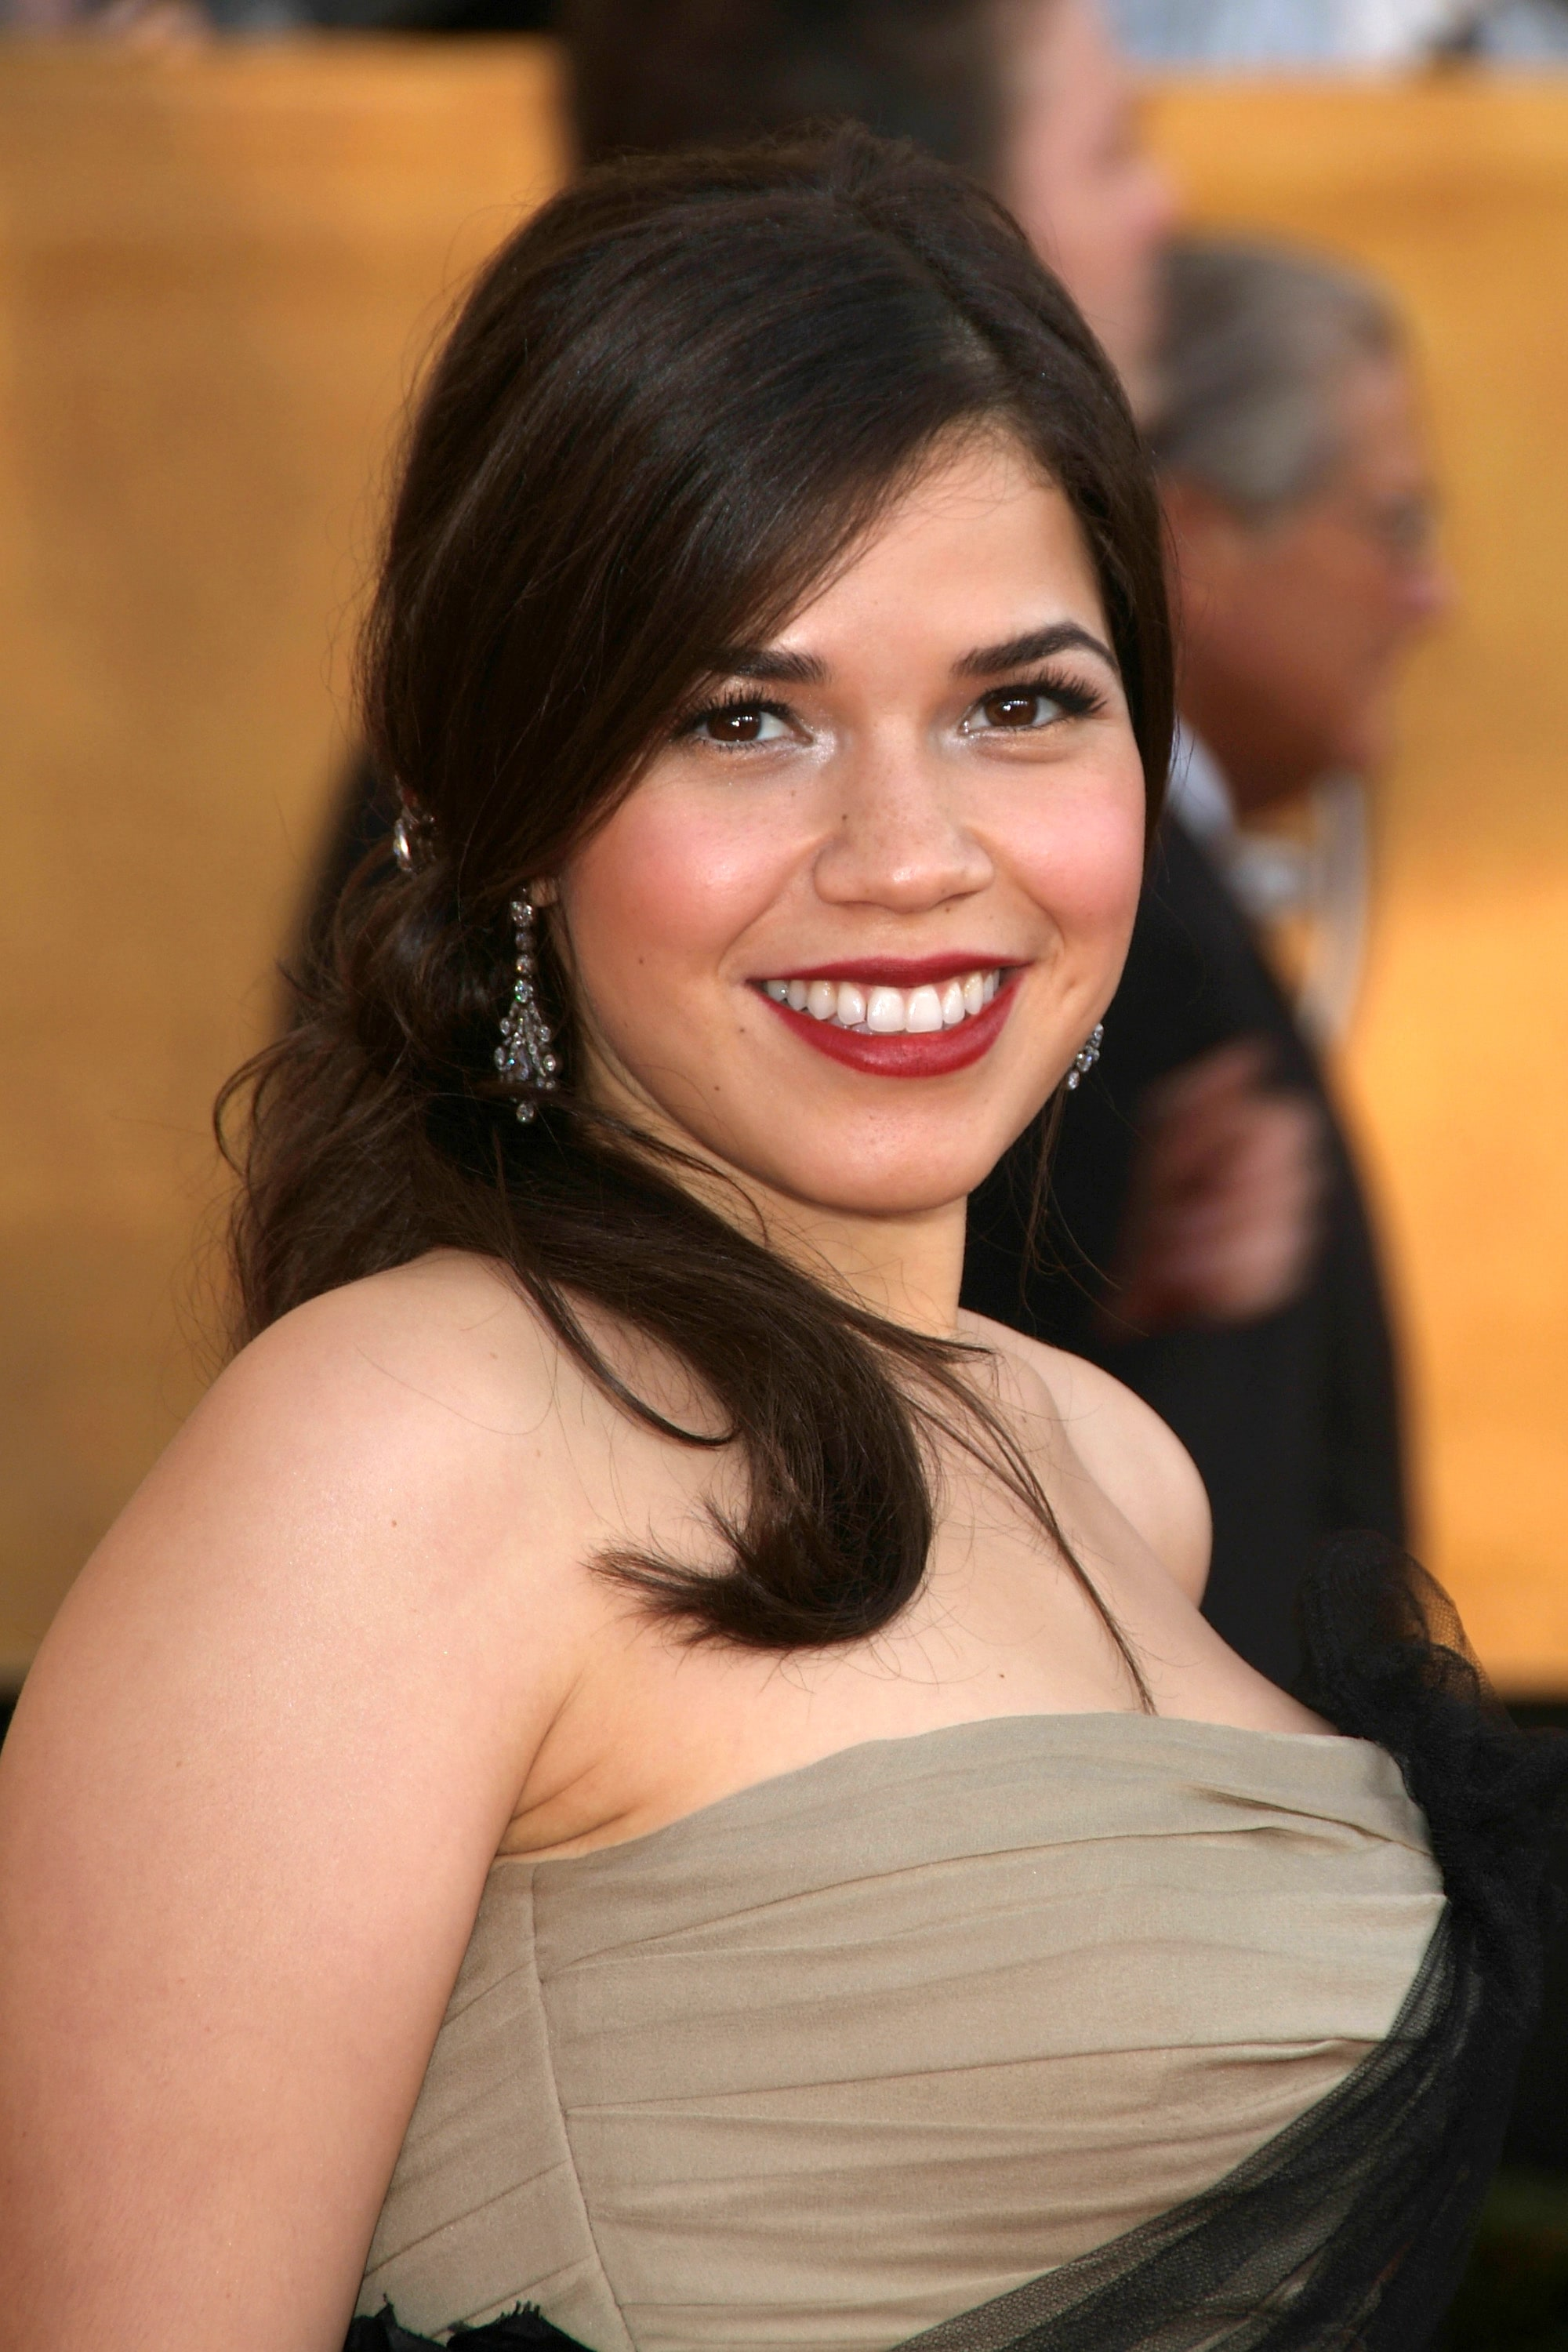 America Ferrera HQ wallpapers